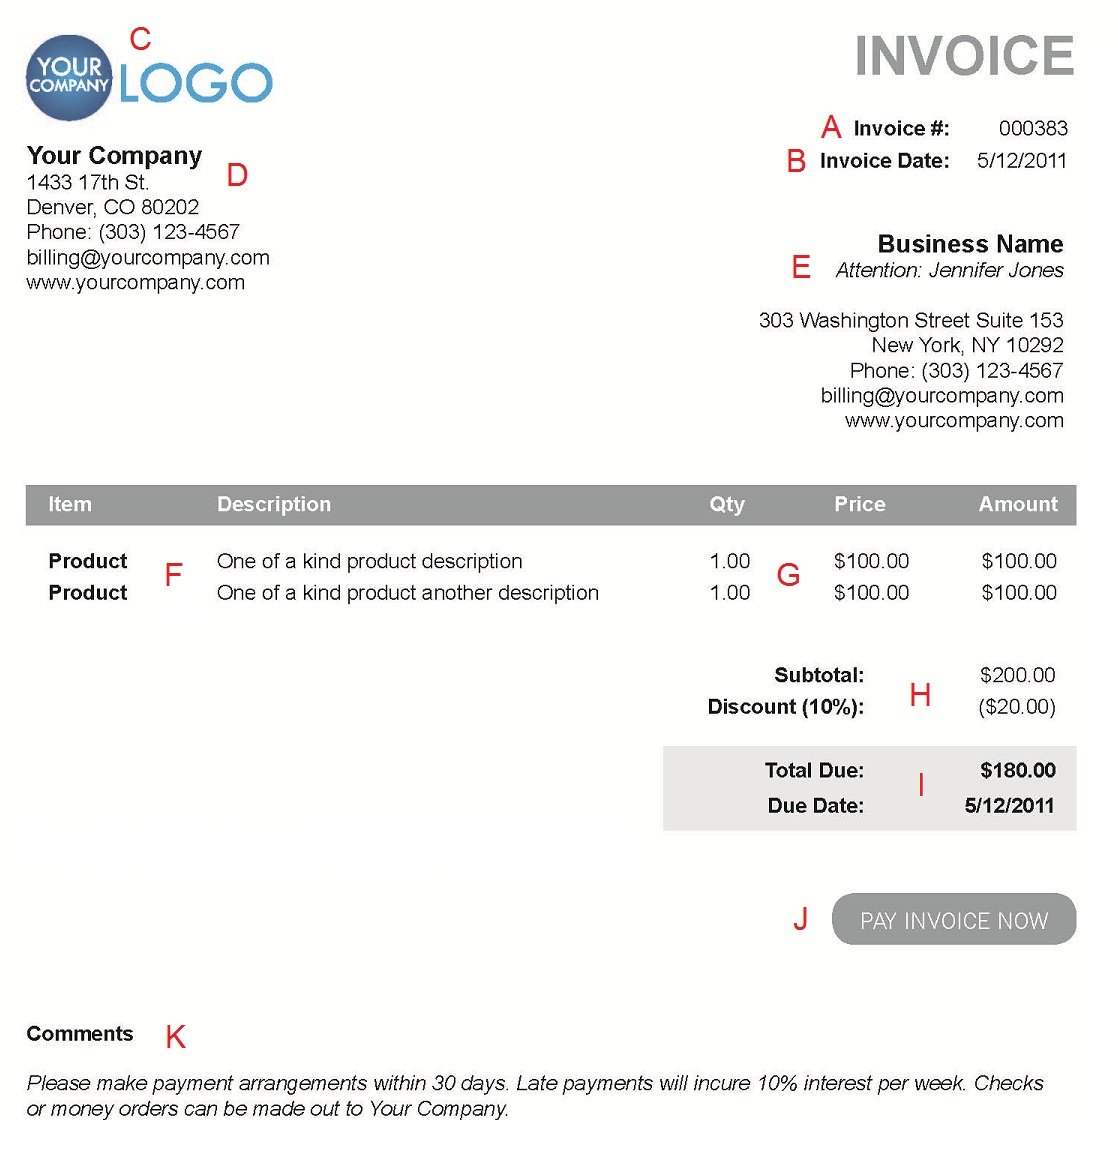 Opposenewapstandardsus  Winning The  Different Sections Of An Electronic Payment Invoice With Interesting A  With Lovely Good Receipts Also Current Account Receipts In Addition Cash Receipt Voucher Sample And Acknowledge Receipt Letter As Well As Star Receipt Printer For Ipad Additionally Free Sales Receipt Form From Paysimplecom With Opposenewapstandardsus  Interesting The  Different Sections Of An Electronic Payment Invoice With Lovely A  And Winning Good Receipts Also Current Account Receipts In Addition Cash Receipt Voucher Sample From Paysimplecom